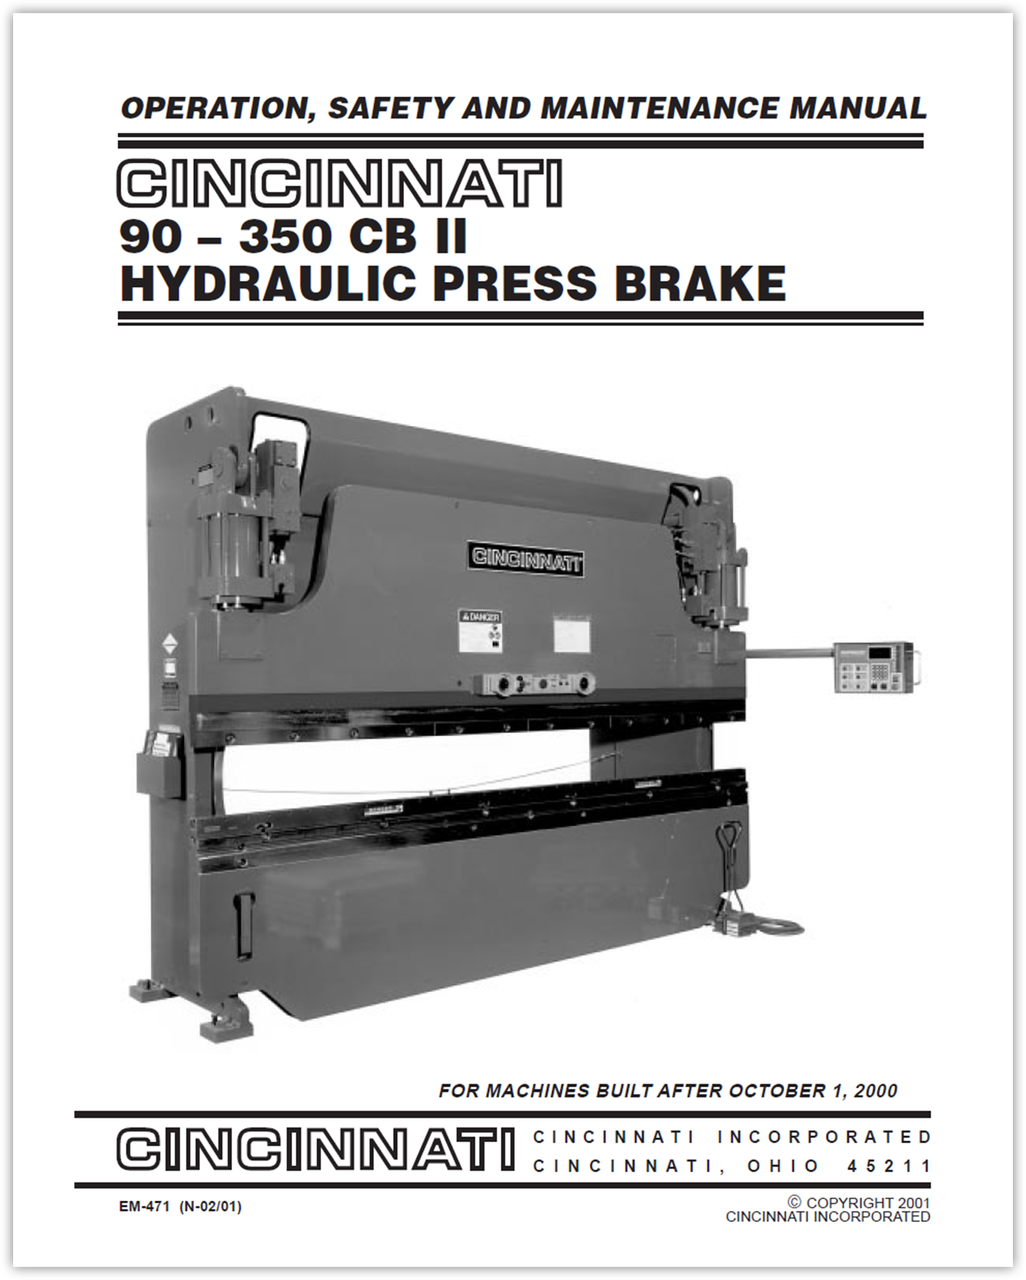 EM-471 (N-02-01) 90-350 CB II Hydraulic Press Brake - Operation, Safety and Maintenance Manual for Machines Built After October 1, 2000